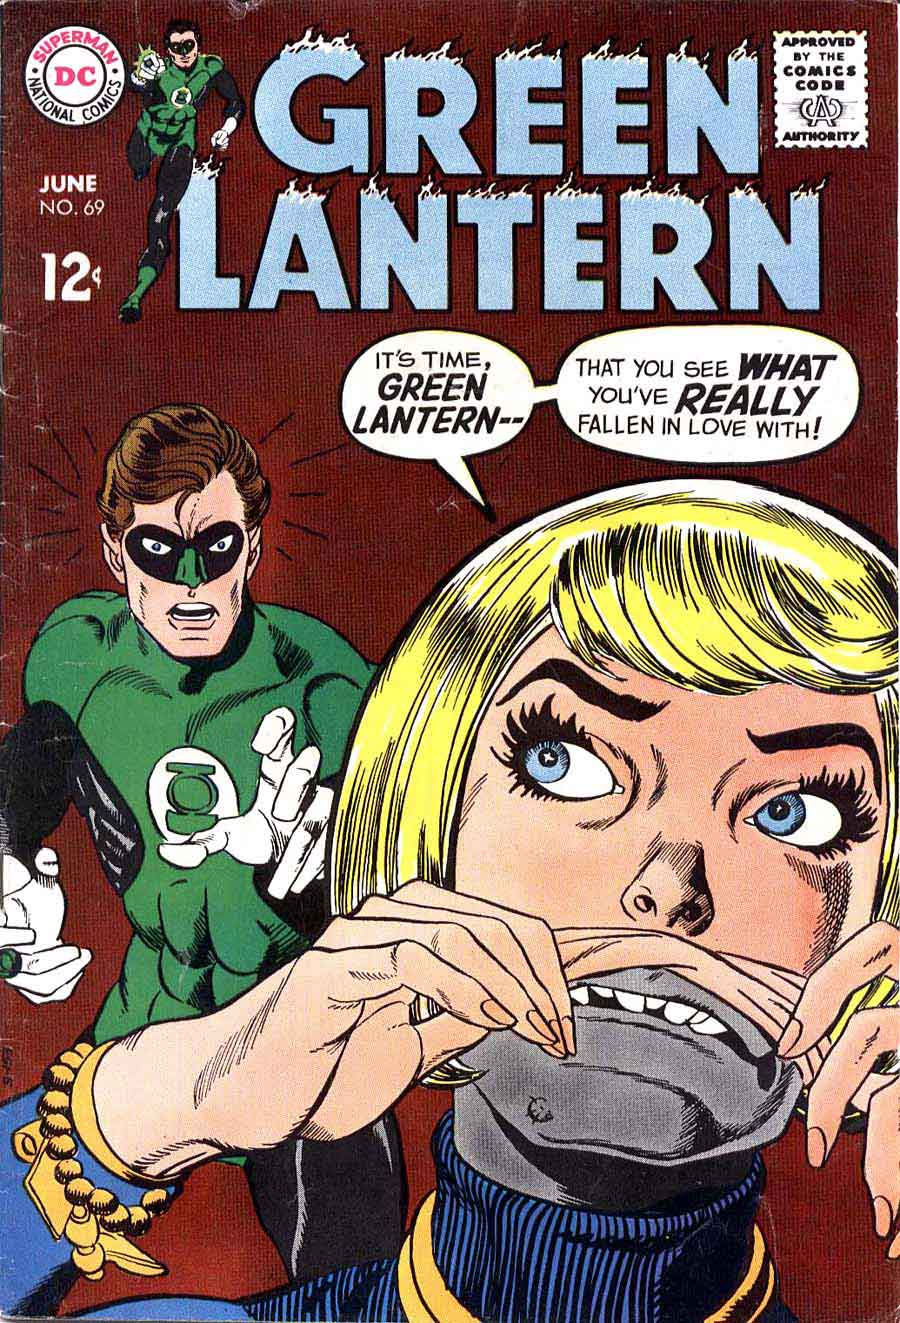 Green Lantern v2 #69 dc comic book cover art by Gil Kane